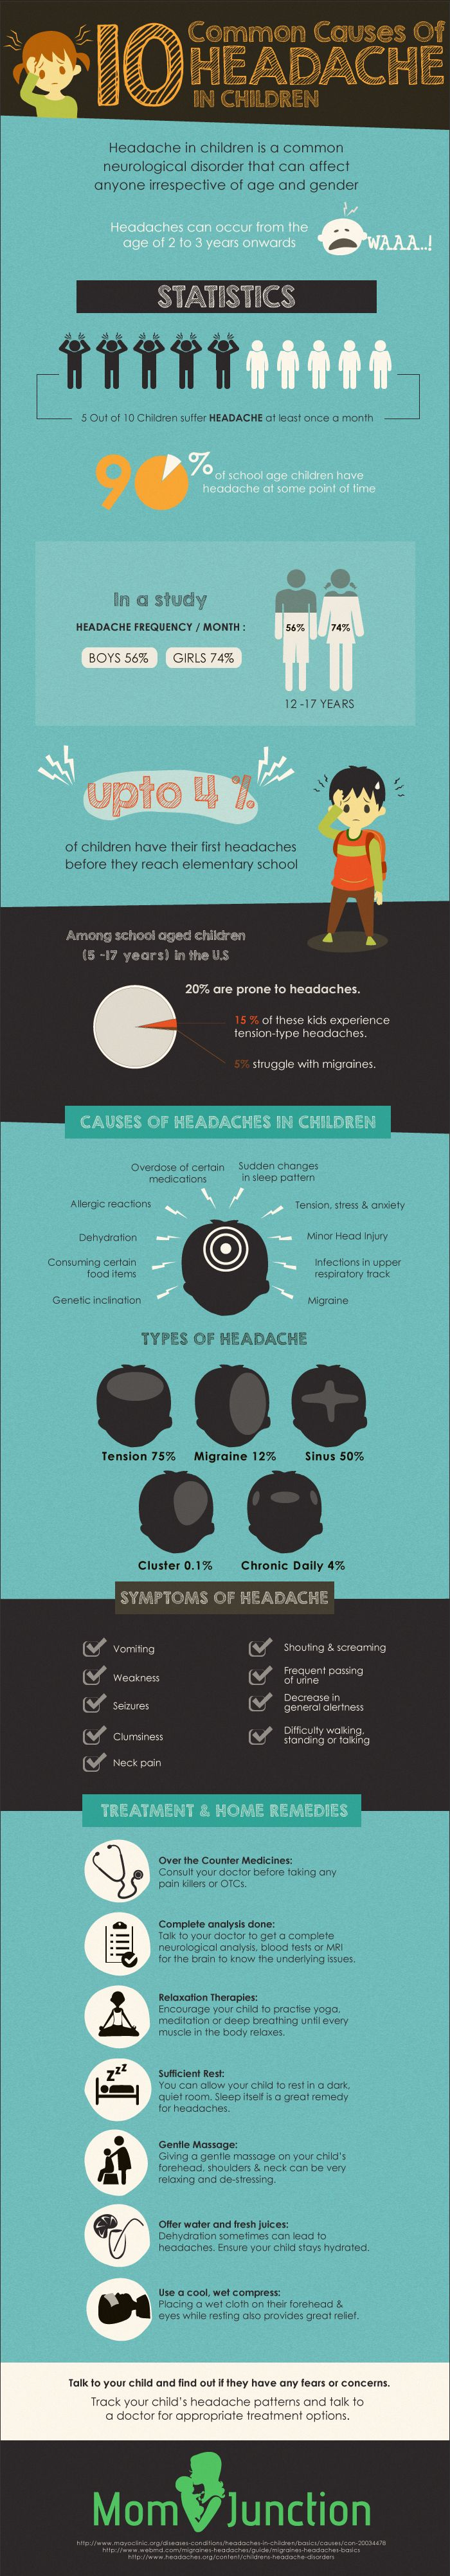 8 Common Causes Of Headache In Children You Should Be Aware Of: Your child may actually be in pain with a headache, let us look into the major reasons behind it. Understanding the causes and signals will help you spot if these are more benign or malignant. This will help you choose timely treatment options for your child.